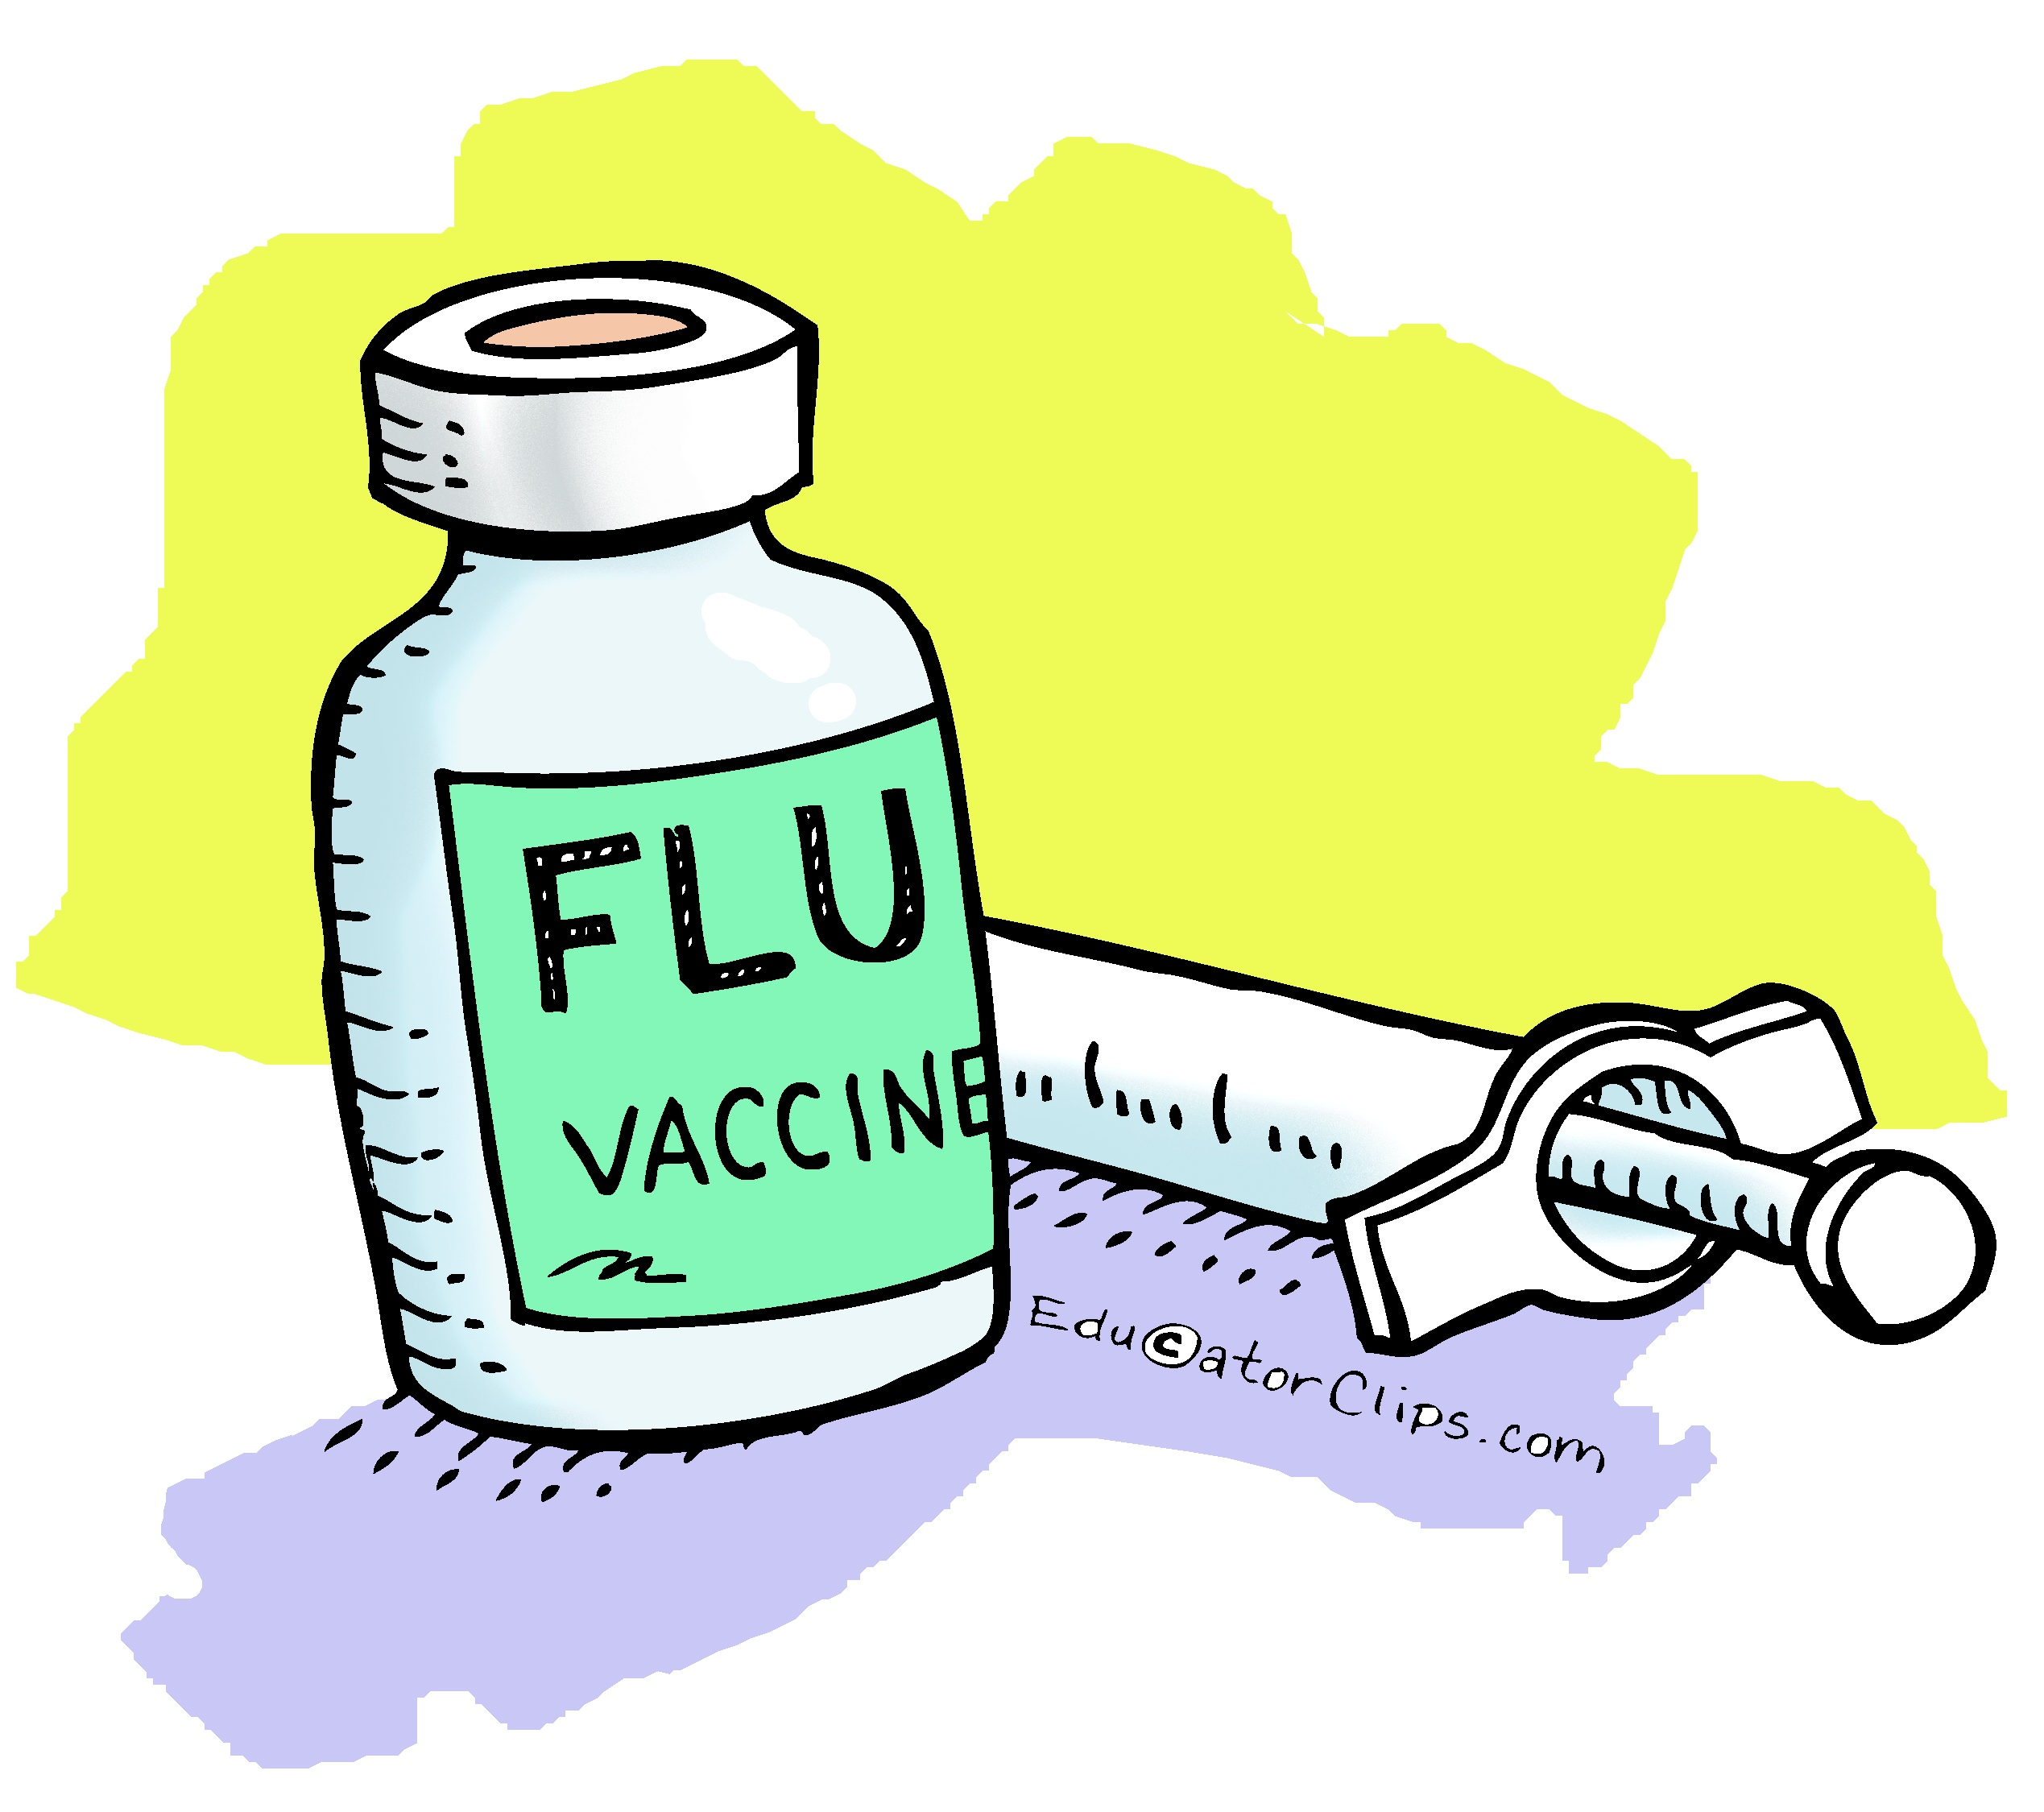 Flu clipart flu shot. Vaccine clip art